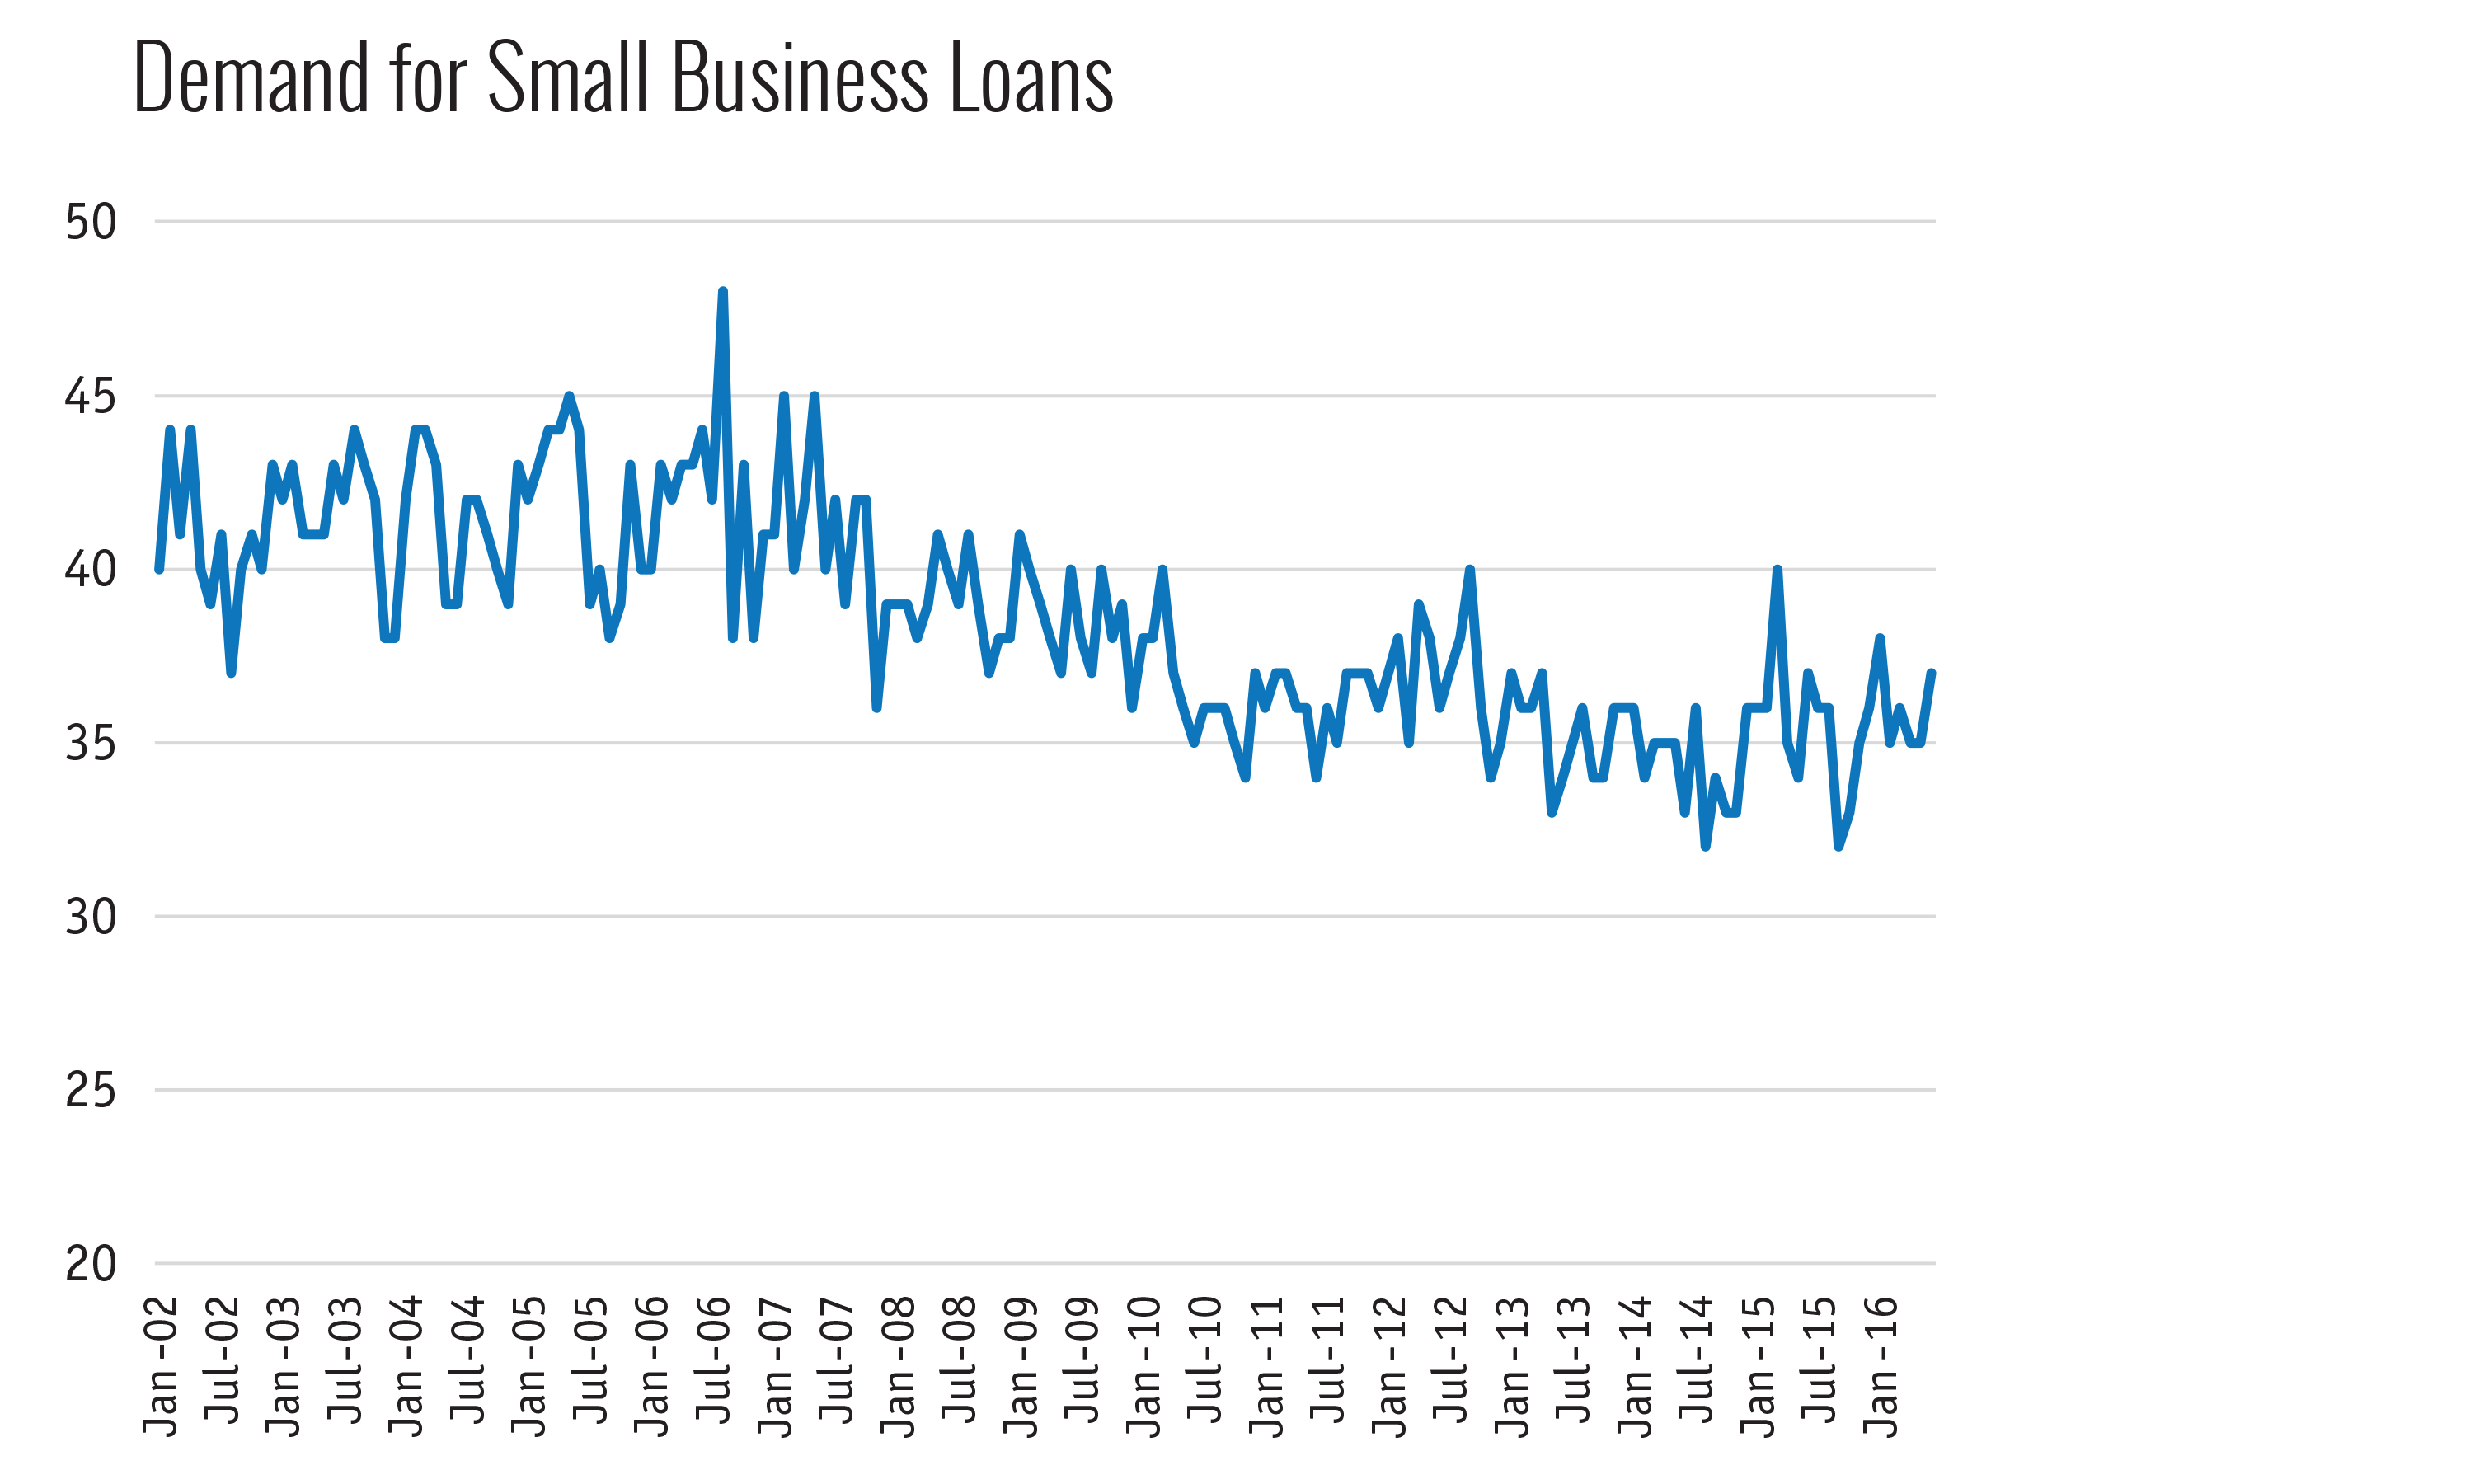 Demand for Small Business Loans